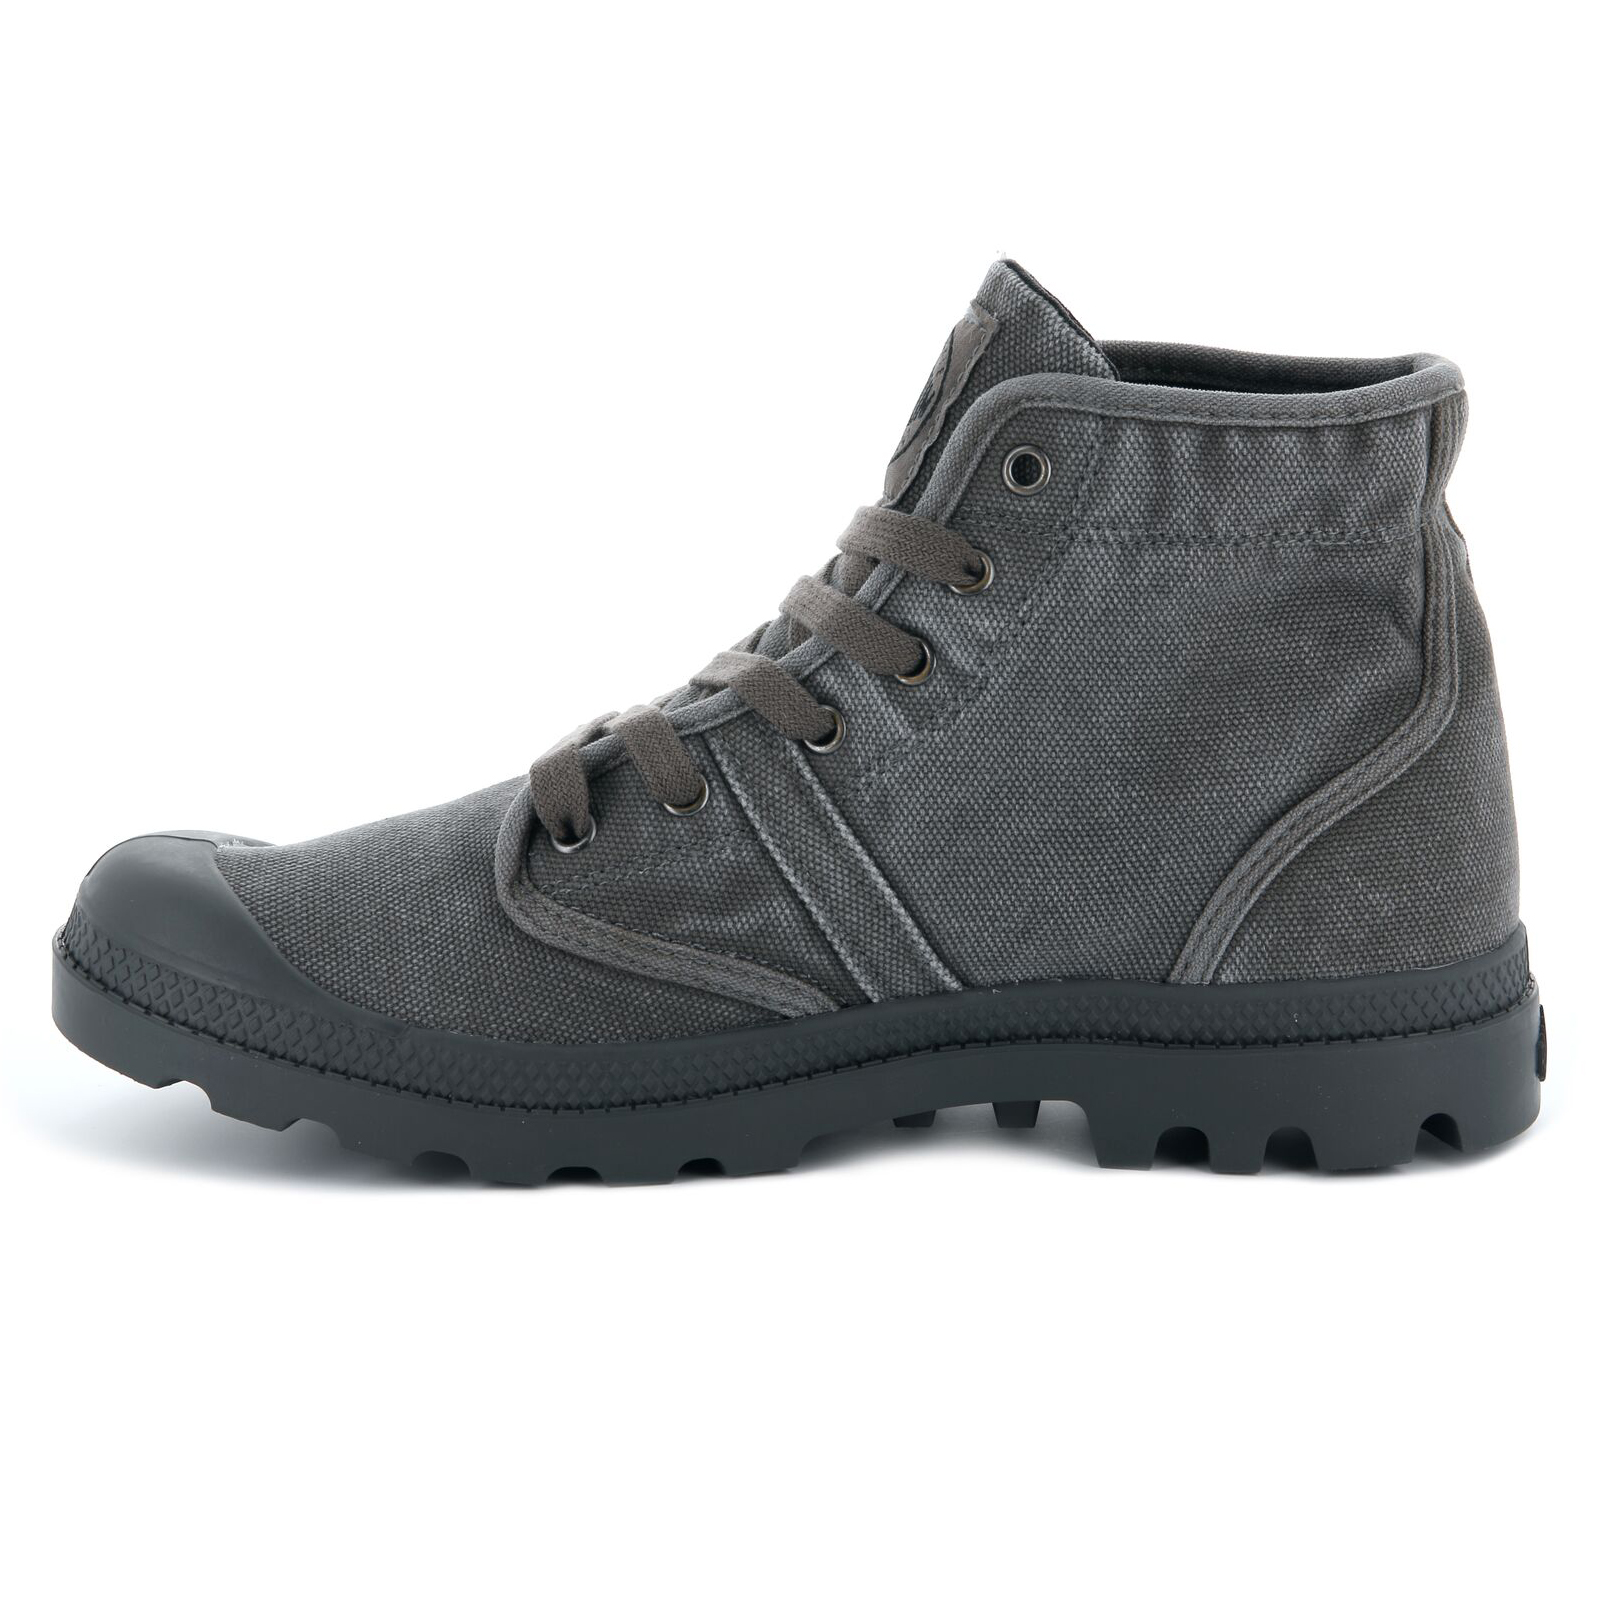 Palladium-Mens-Shoe-Pallabrouse-New-Designer-Walking-High-Top-Canvas-Ankle-Boots thumbnail 13